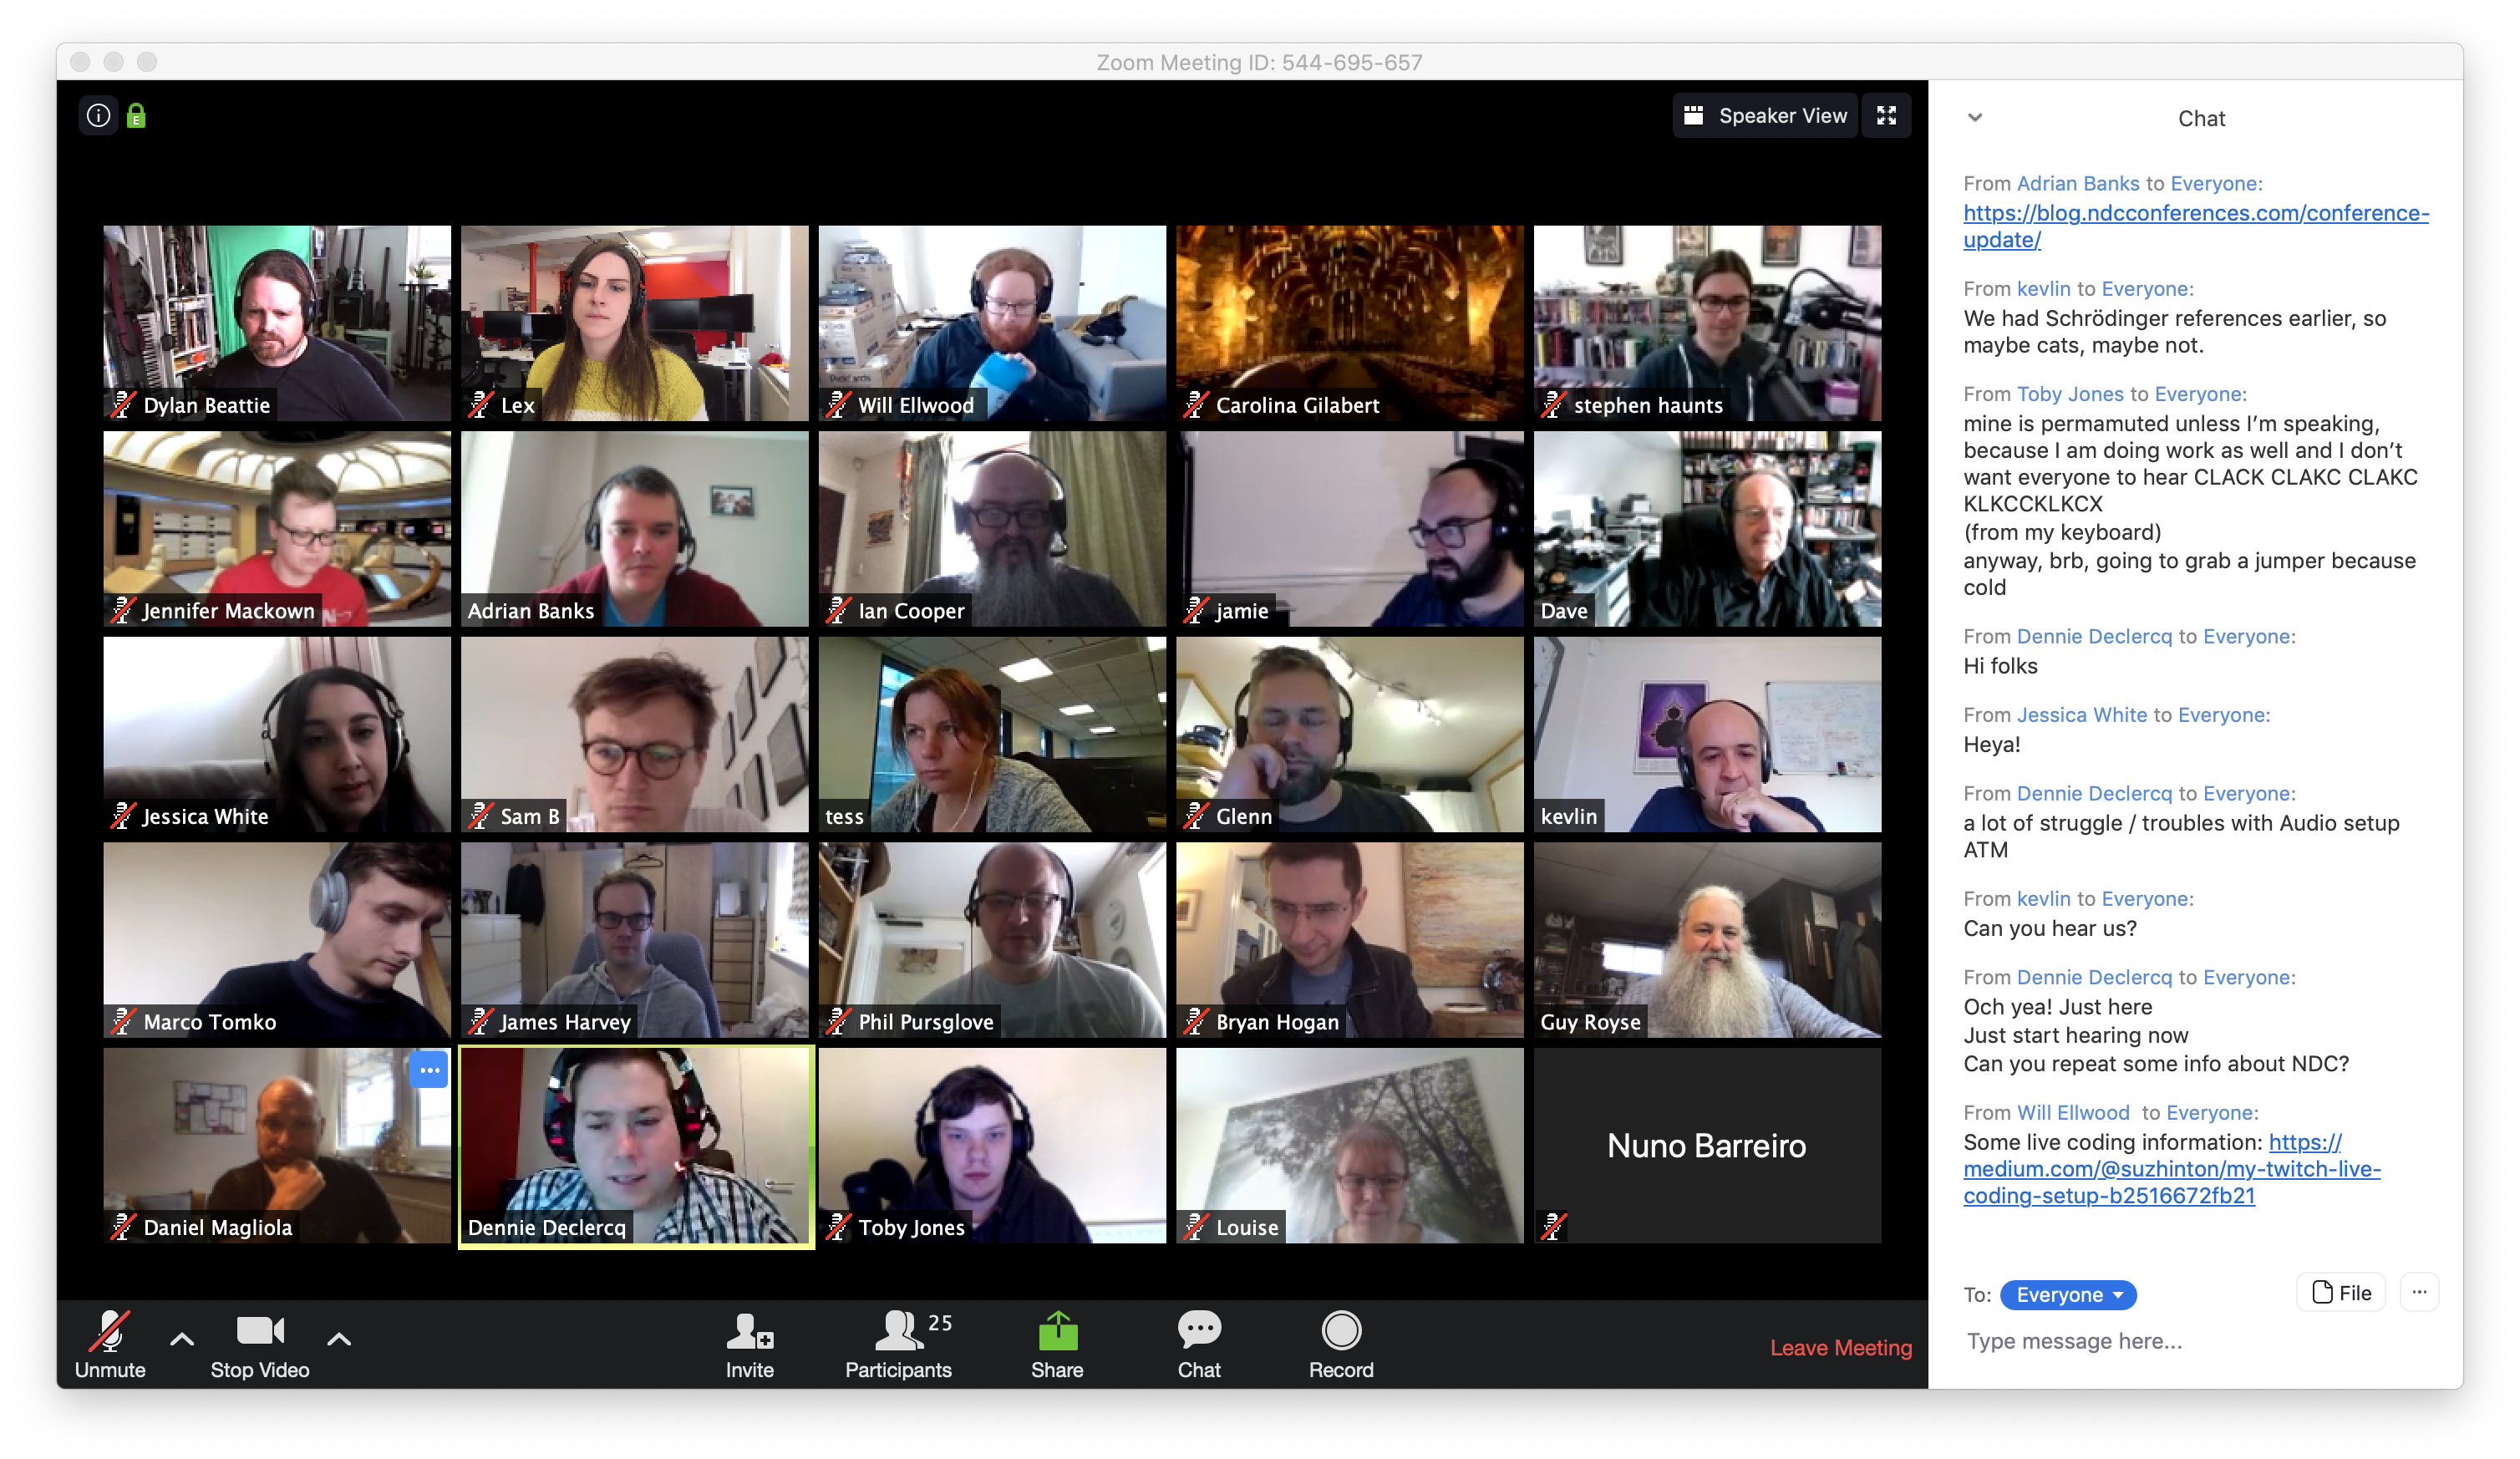 Screenshot of a Zoom meeting with lots of participants